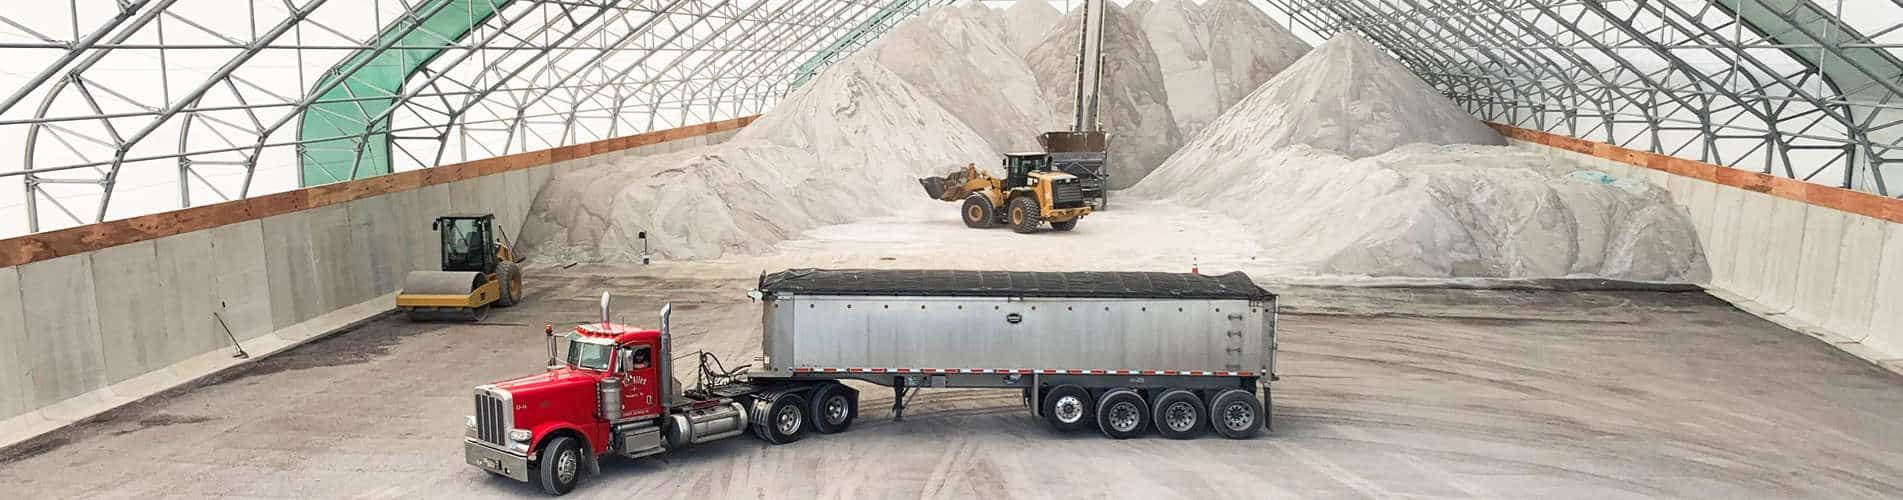 Salt Storage Fabric Building with large truck